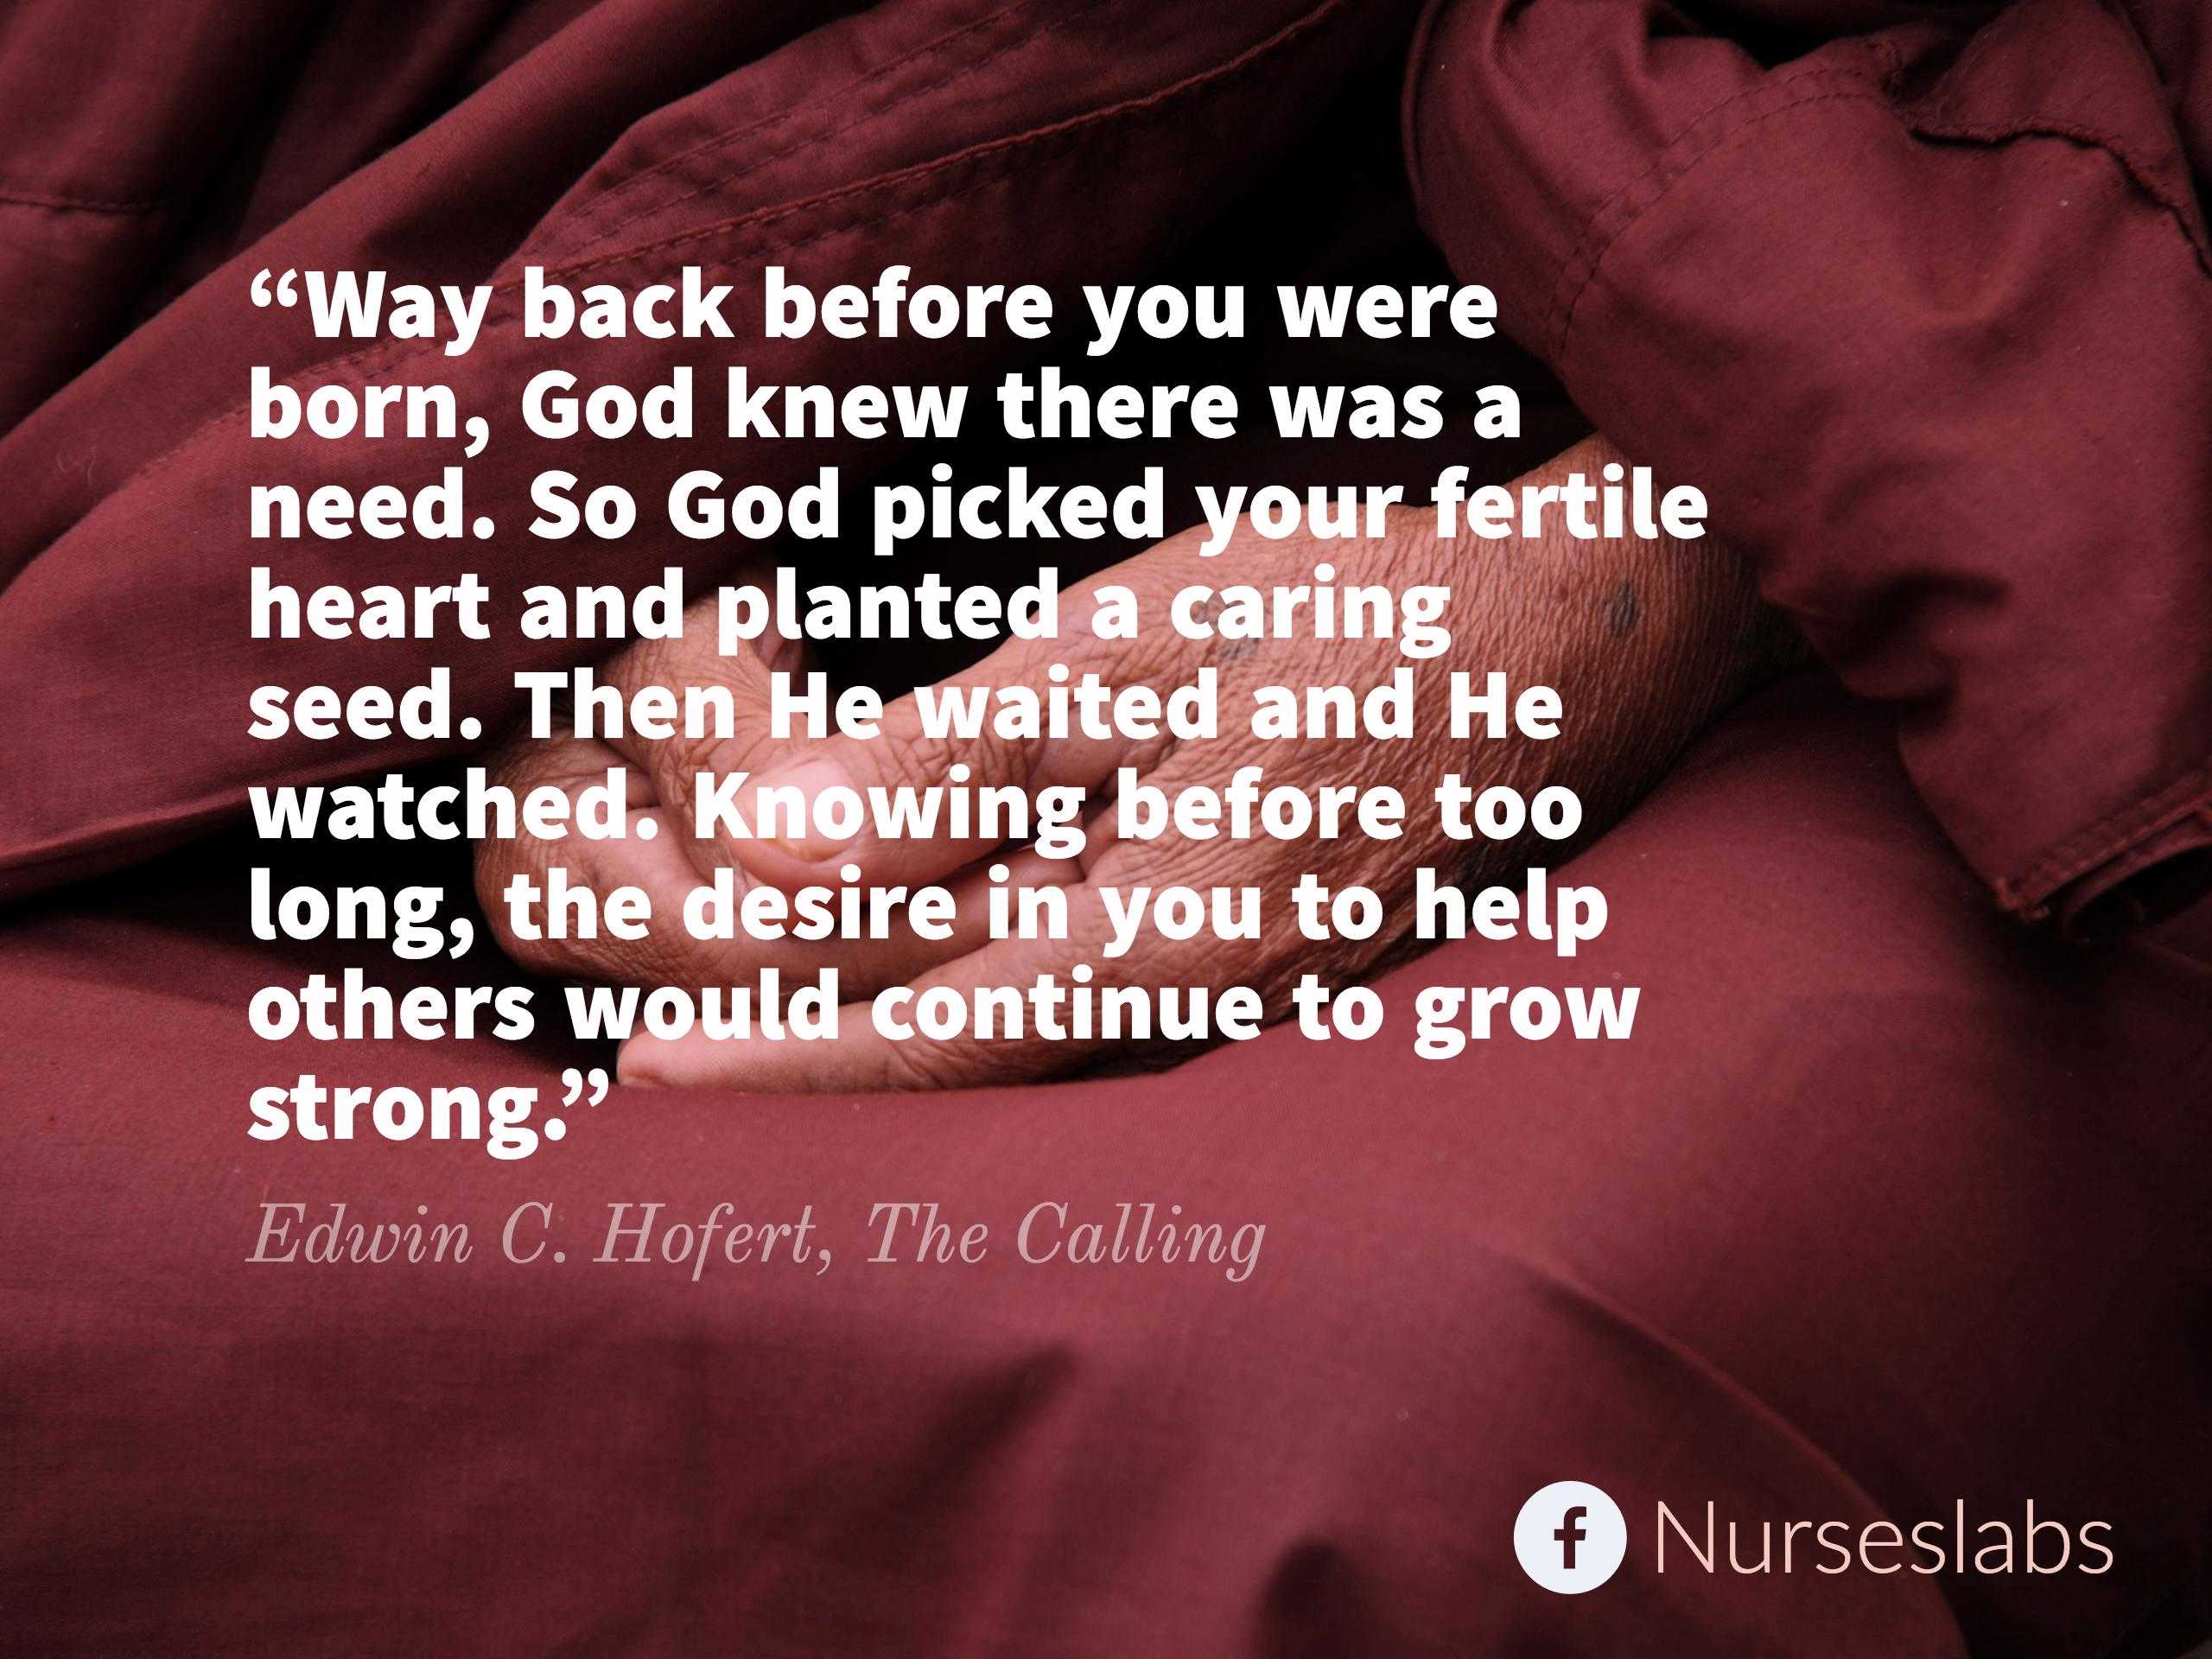 """Way back before you were born, God knew there was a need. So God picked your fertile heart and planted a caring seed. Then He waited and He watched. Knowing before too long, the desire in you to help others would continue to grow strong."" – Edwin C. Hofert, The Calling"